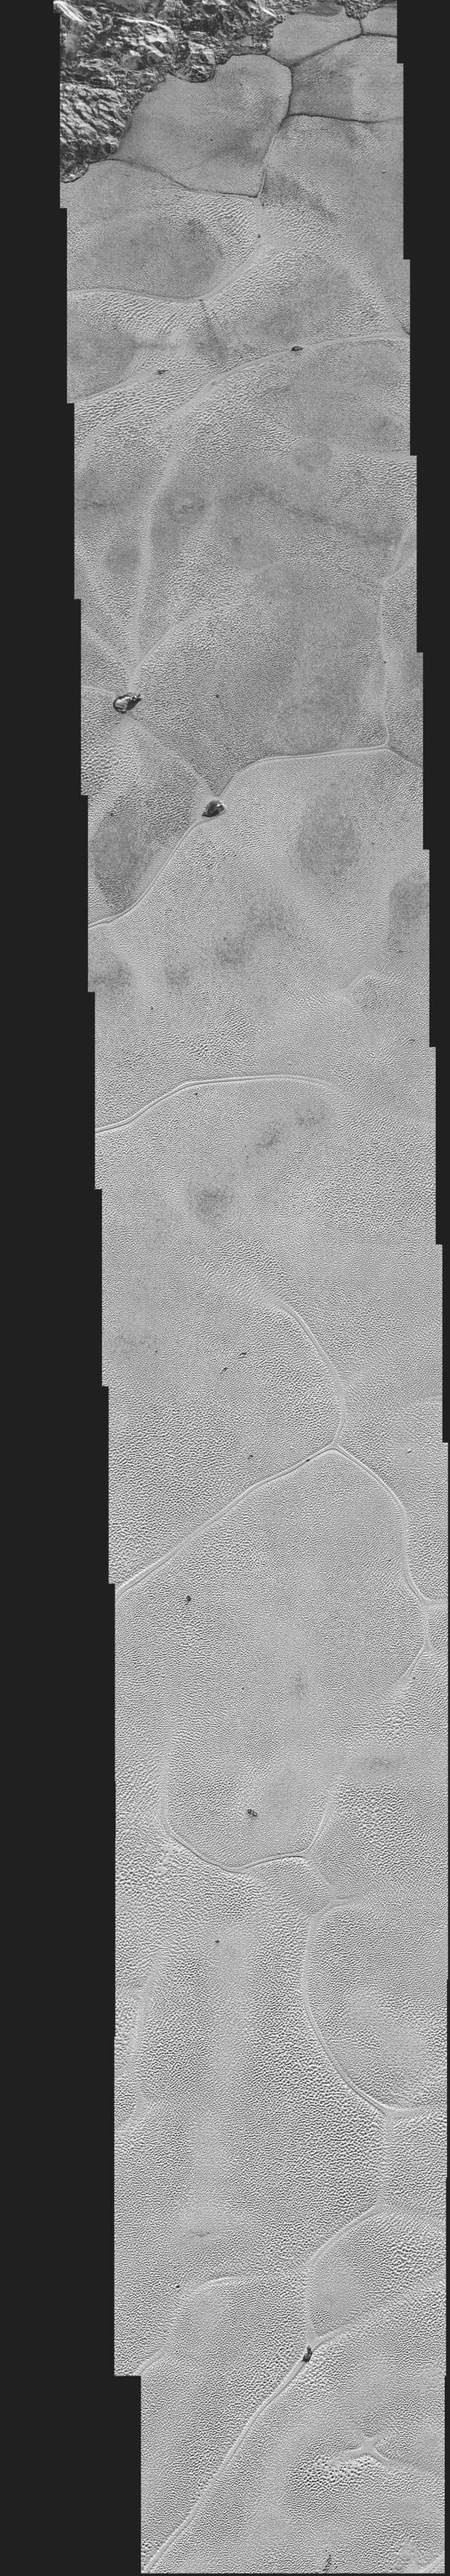 Pluto's Icy Plains in Highest-Resolution Views from New Horizons